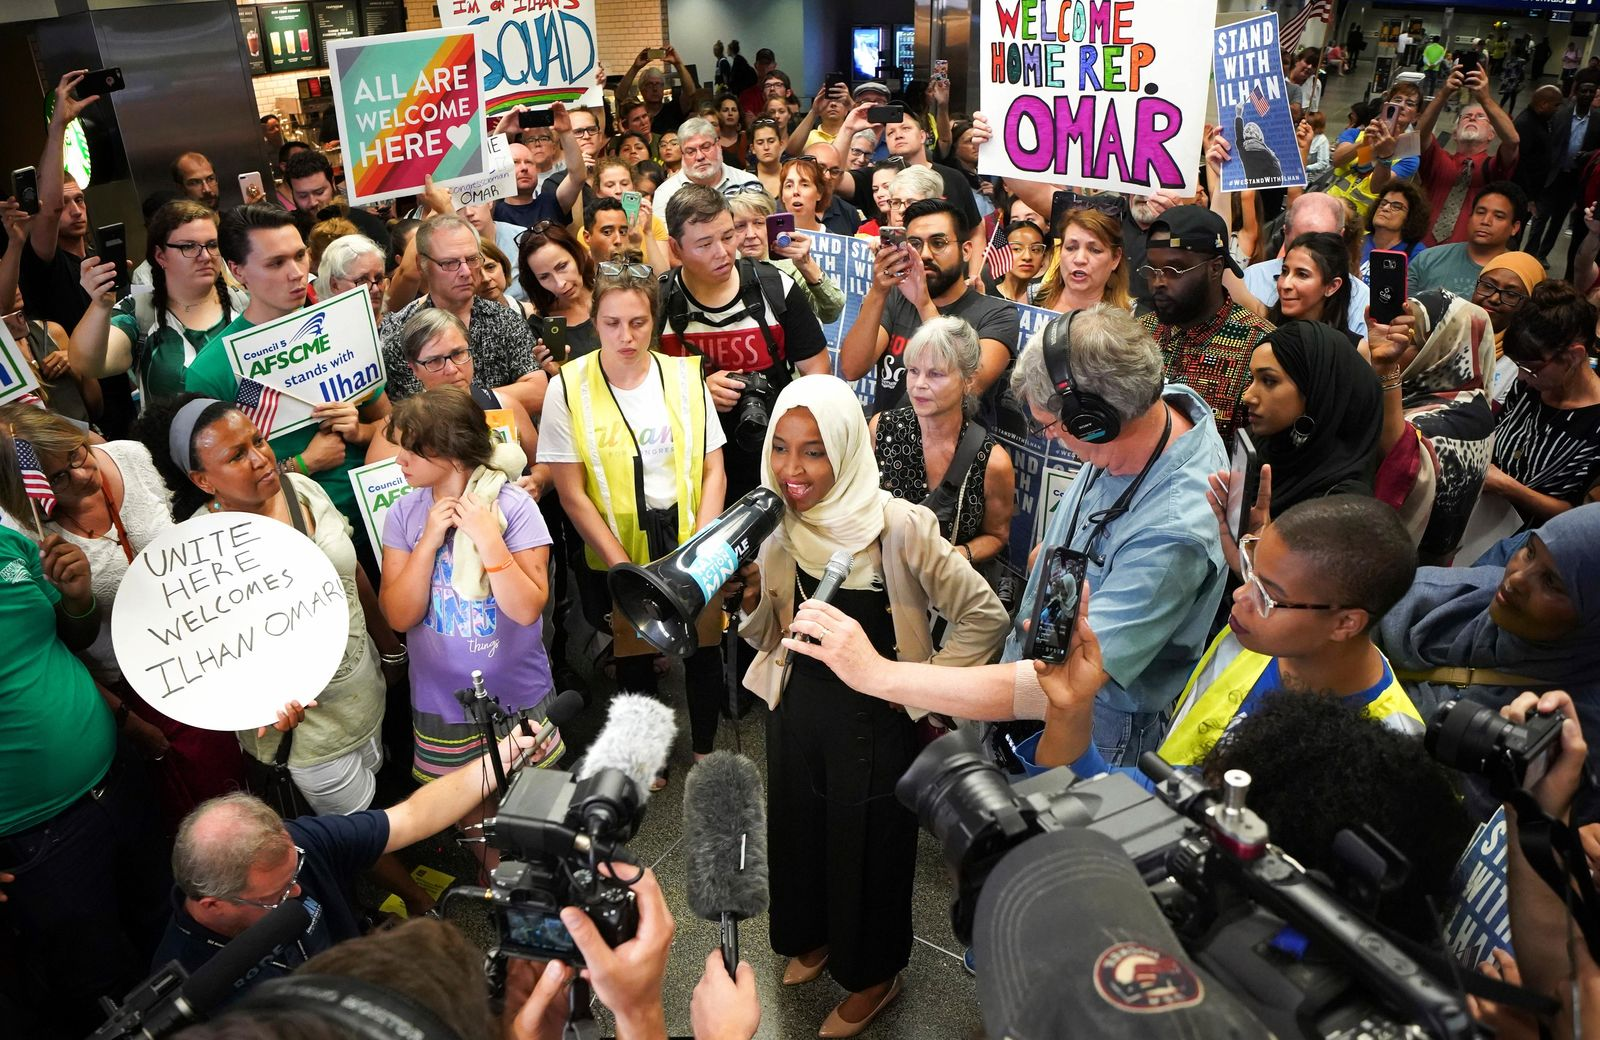 U.S. Rep. Ilhan Omar speaks to supporters after arriving home, at Minneapolis–Saint Paul International Airport, Thursday, July 18, 2019, in Minnesota. (Glen Stubbe/Star Tribune via AP)